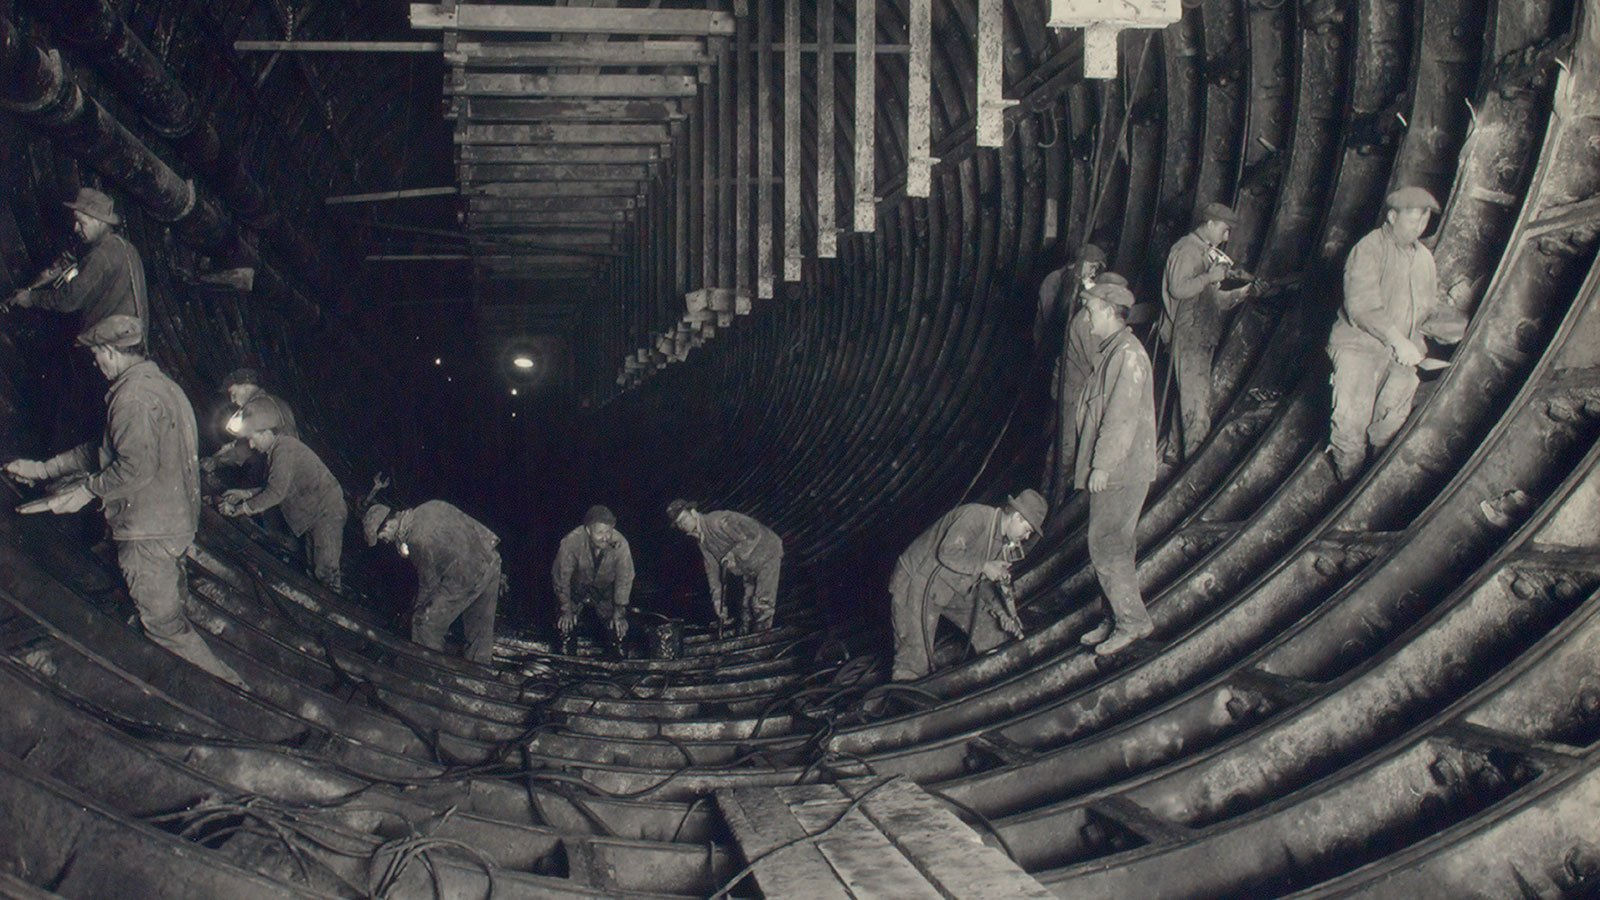 ontract No. 4. Cleaning, caulking, pointing and making iron watertight invert, South Tunnel east, N.J., 12/5/24, 3:30 p.m.